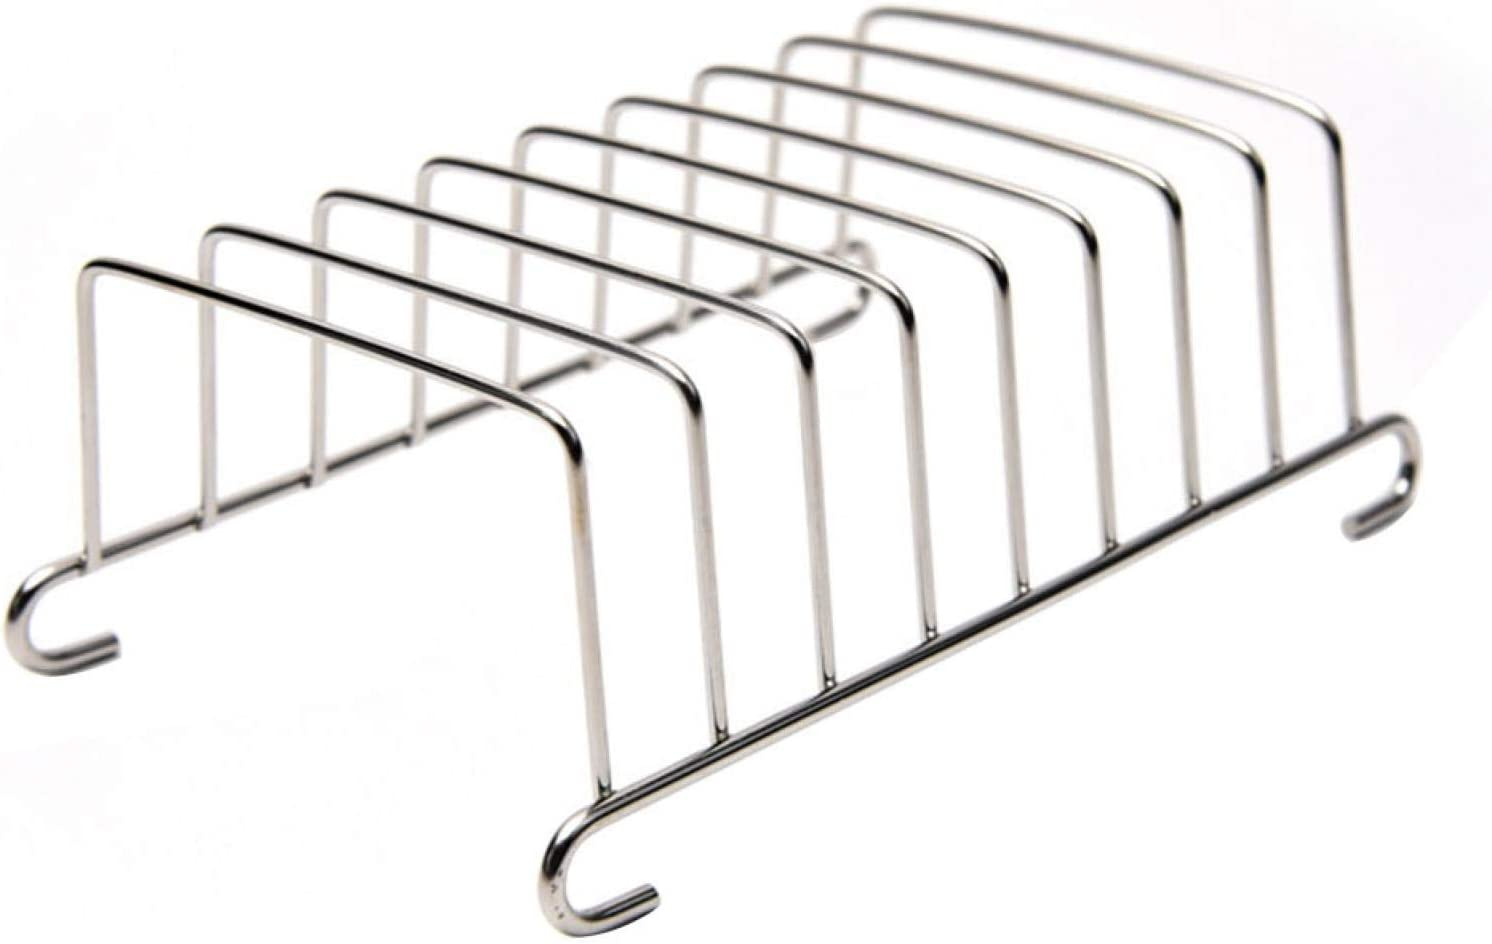 Toast Rack,Stainless Steel Tool Cooling Grid Bread Rack Rectangle Air Fryer Accessories